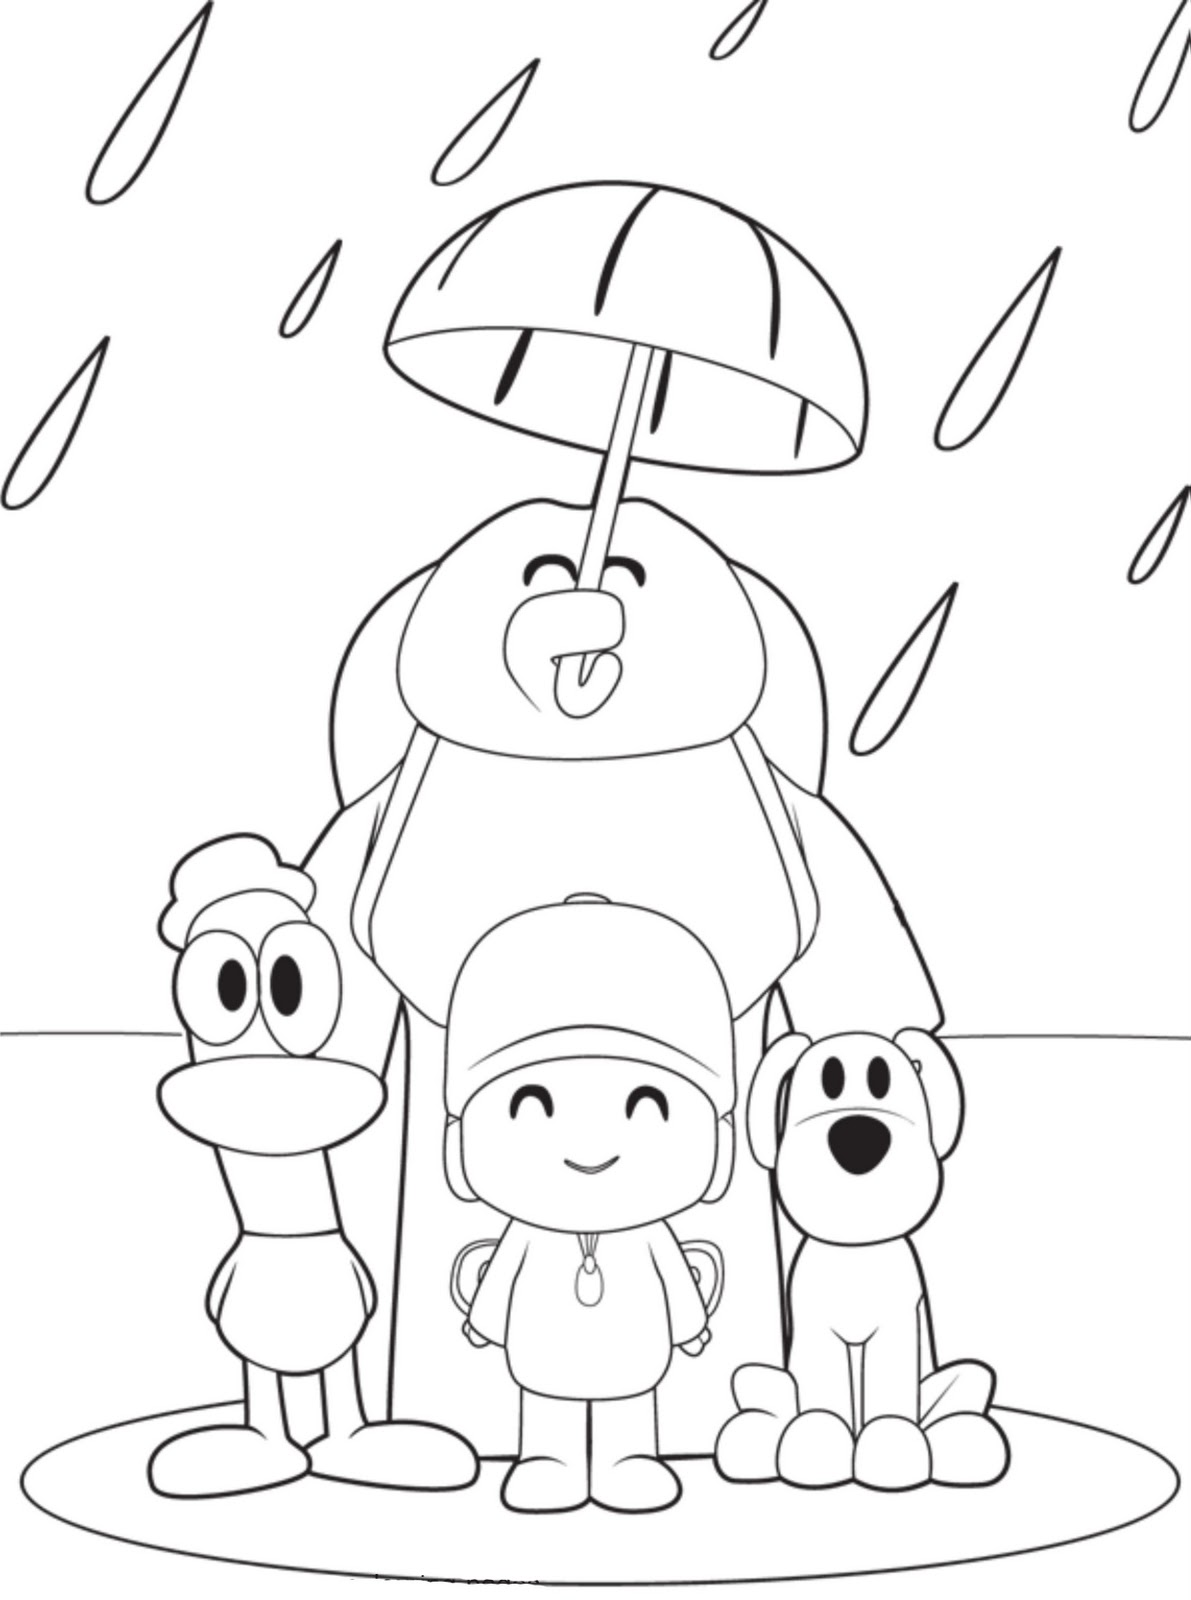 Free printable pocoyo coloring pages for kids Coloring book sheets